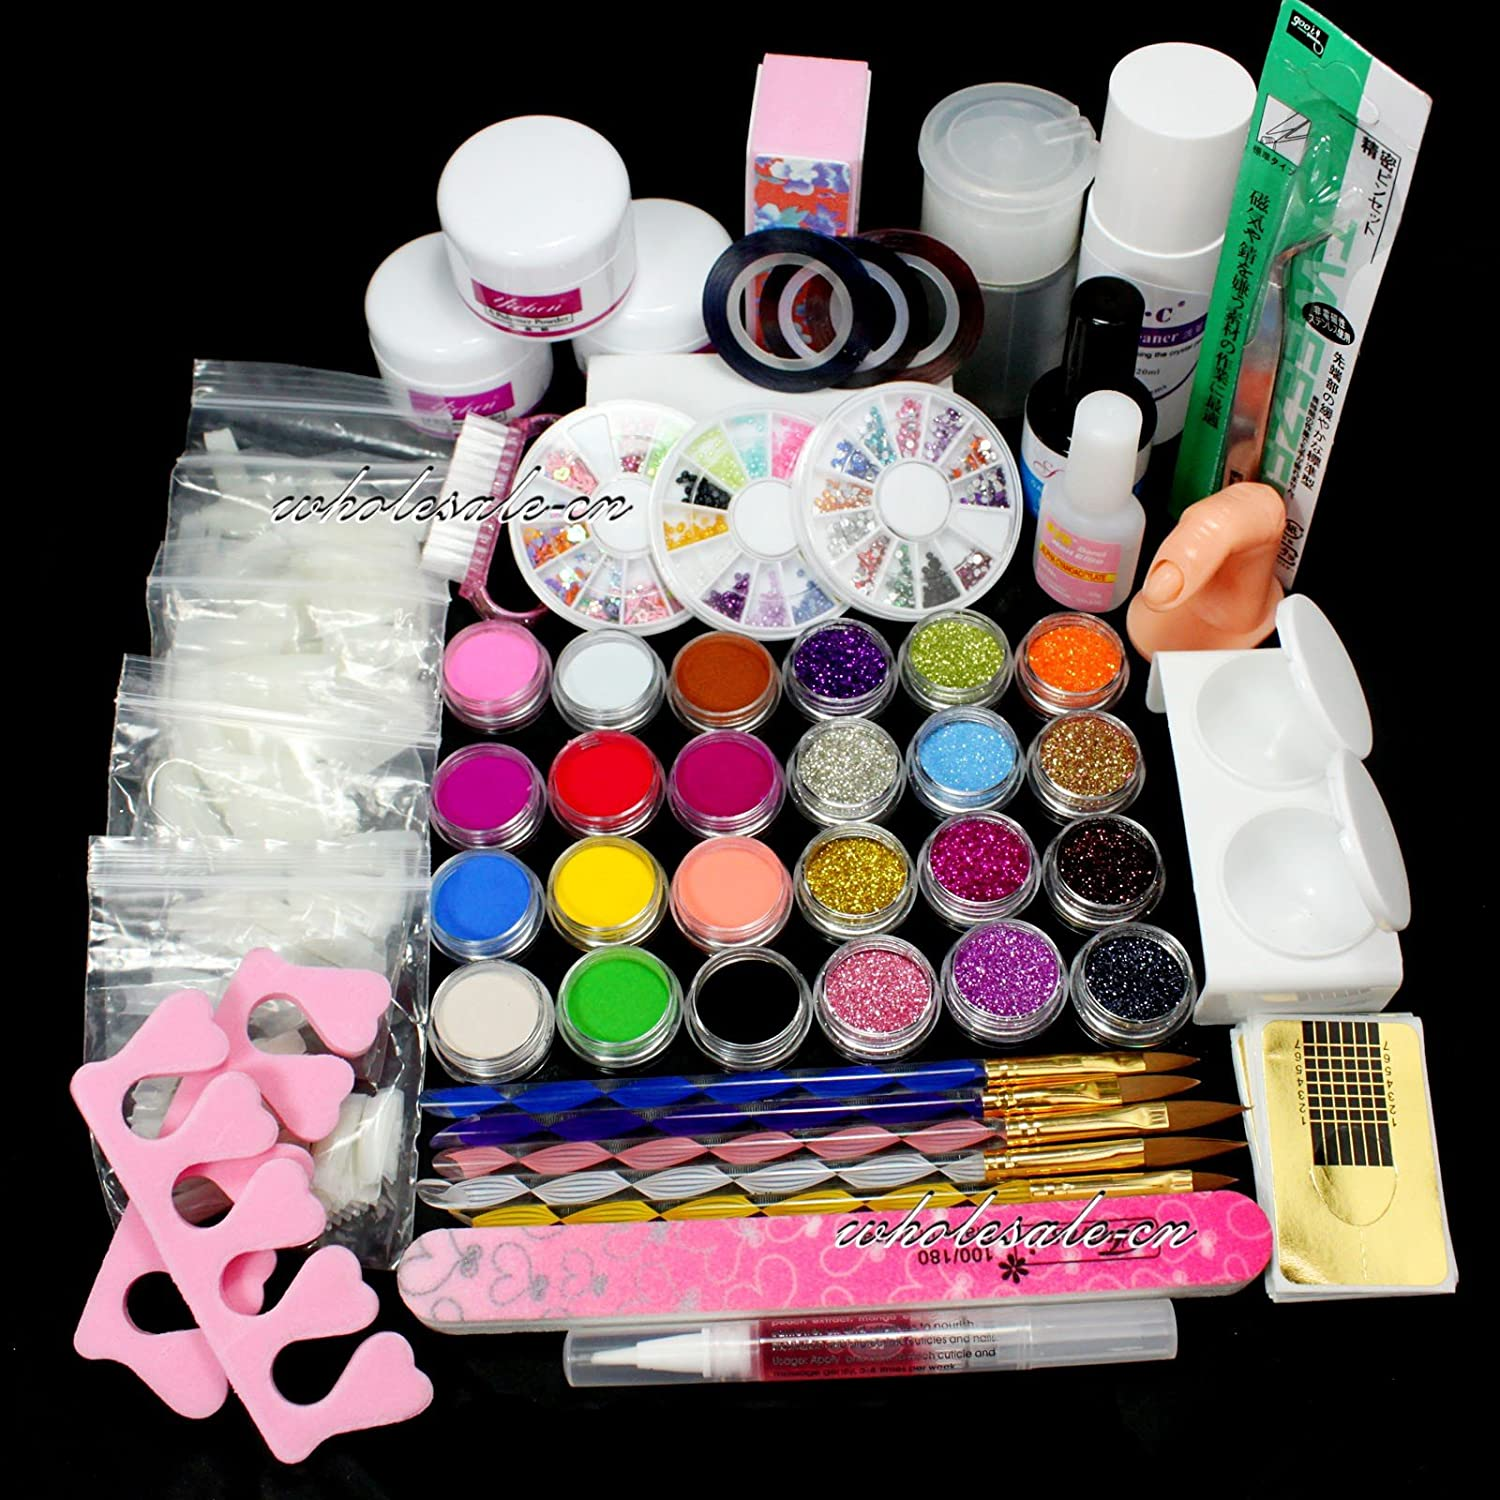 Amazon.com : Excellent Gift!! Full Nail Art Set Acrylic Glitter ...